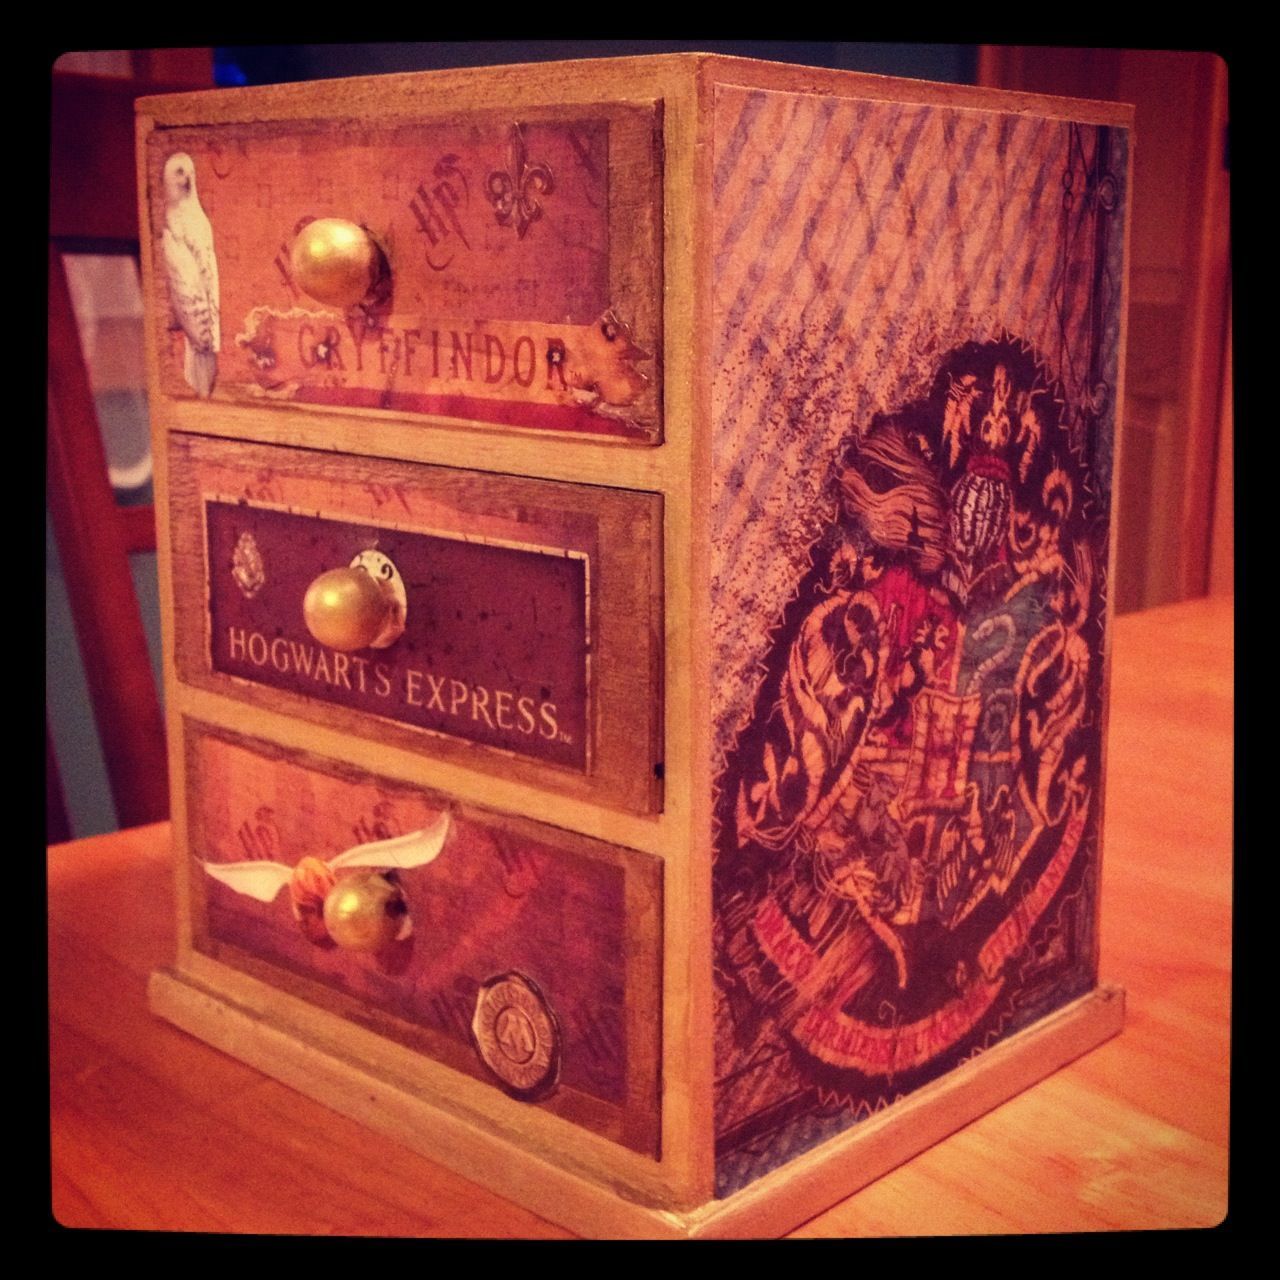 harry potter themed jewelry box i made for my niece